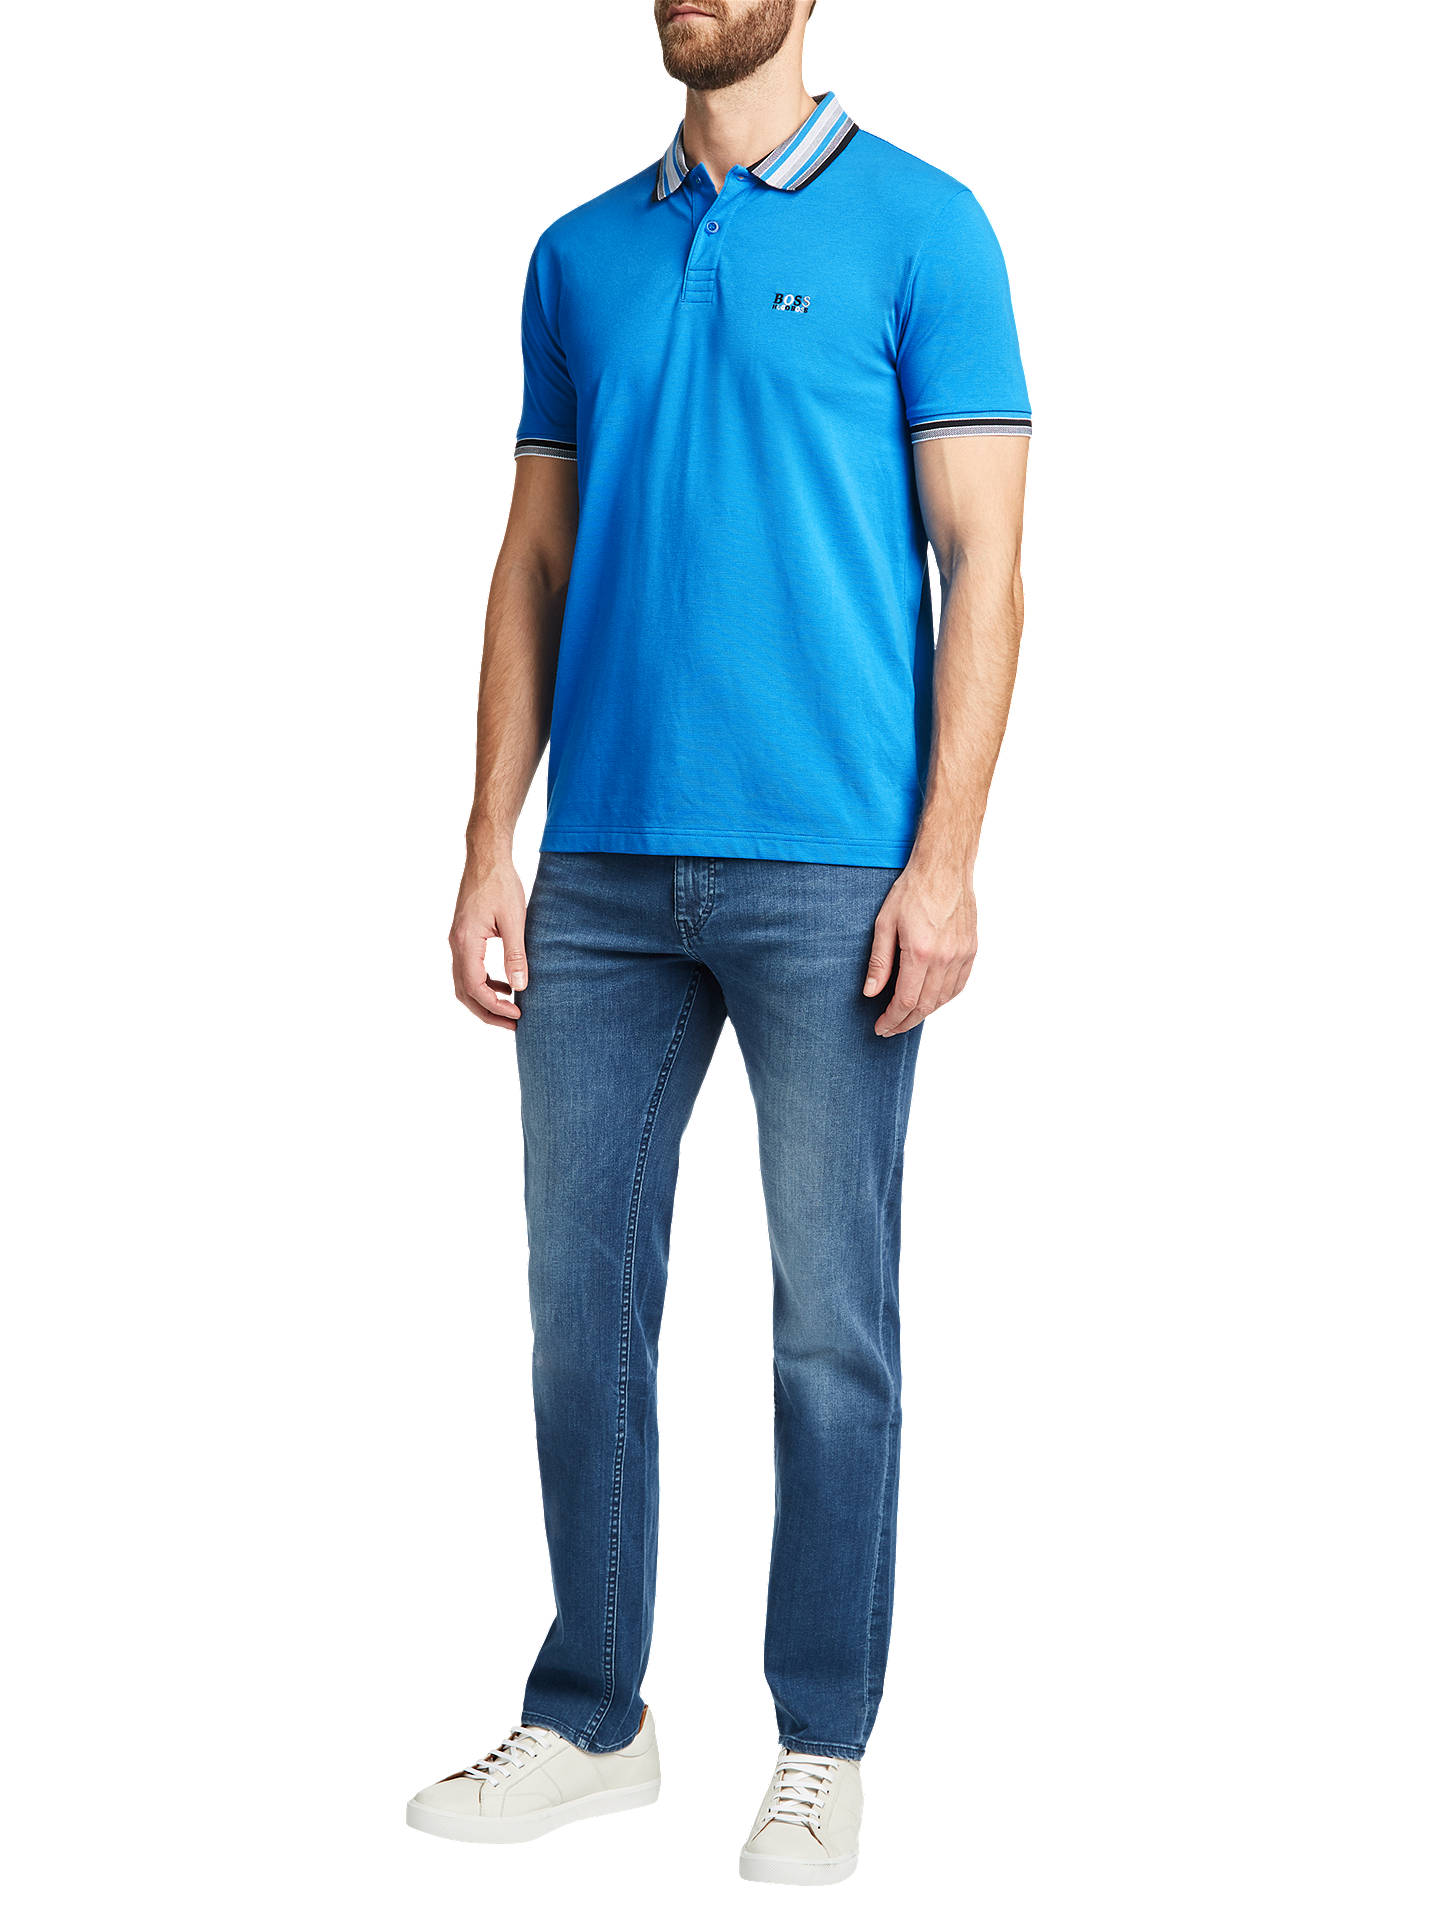 Buy BOSS Paddy Polo Shirt, Bright Blue, S Online at johnlewis.com